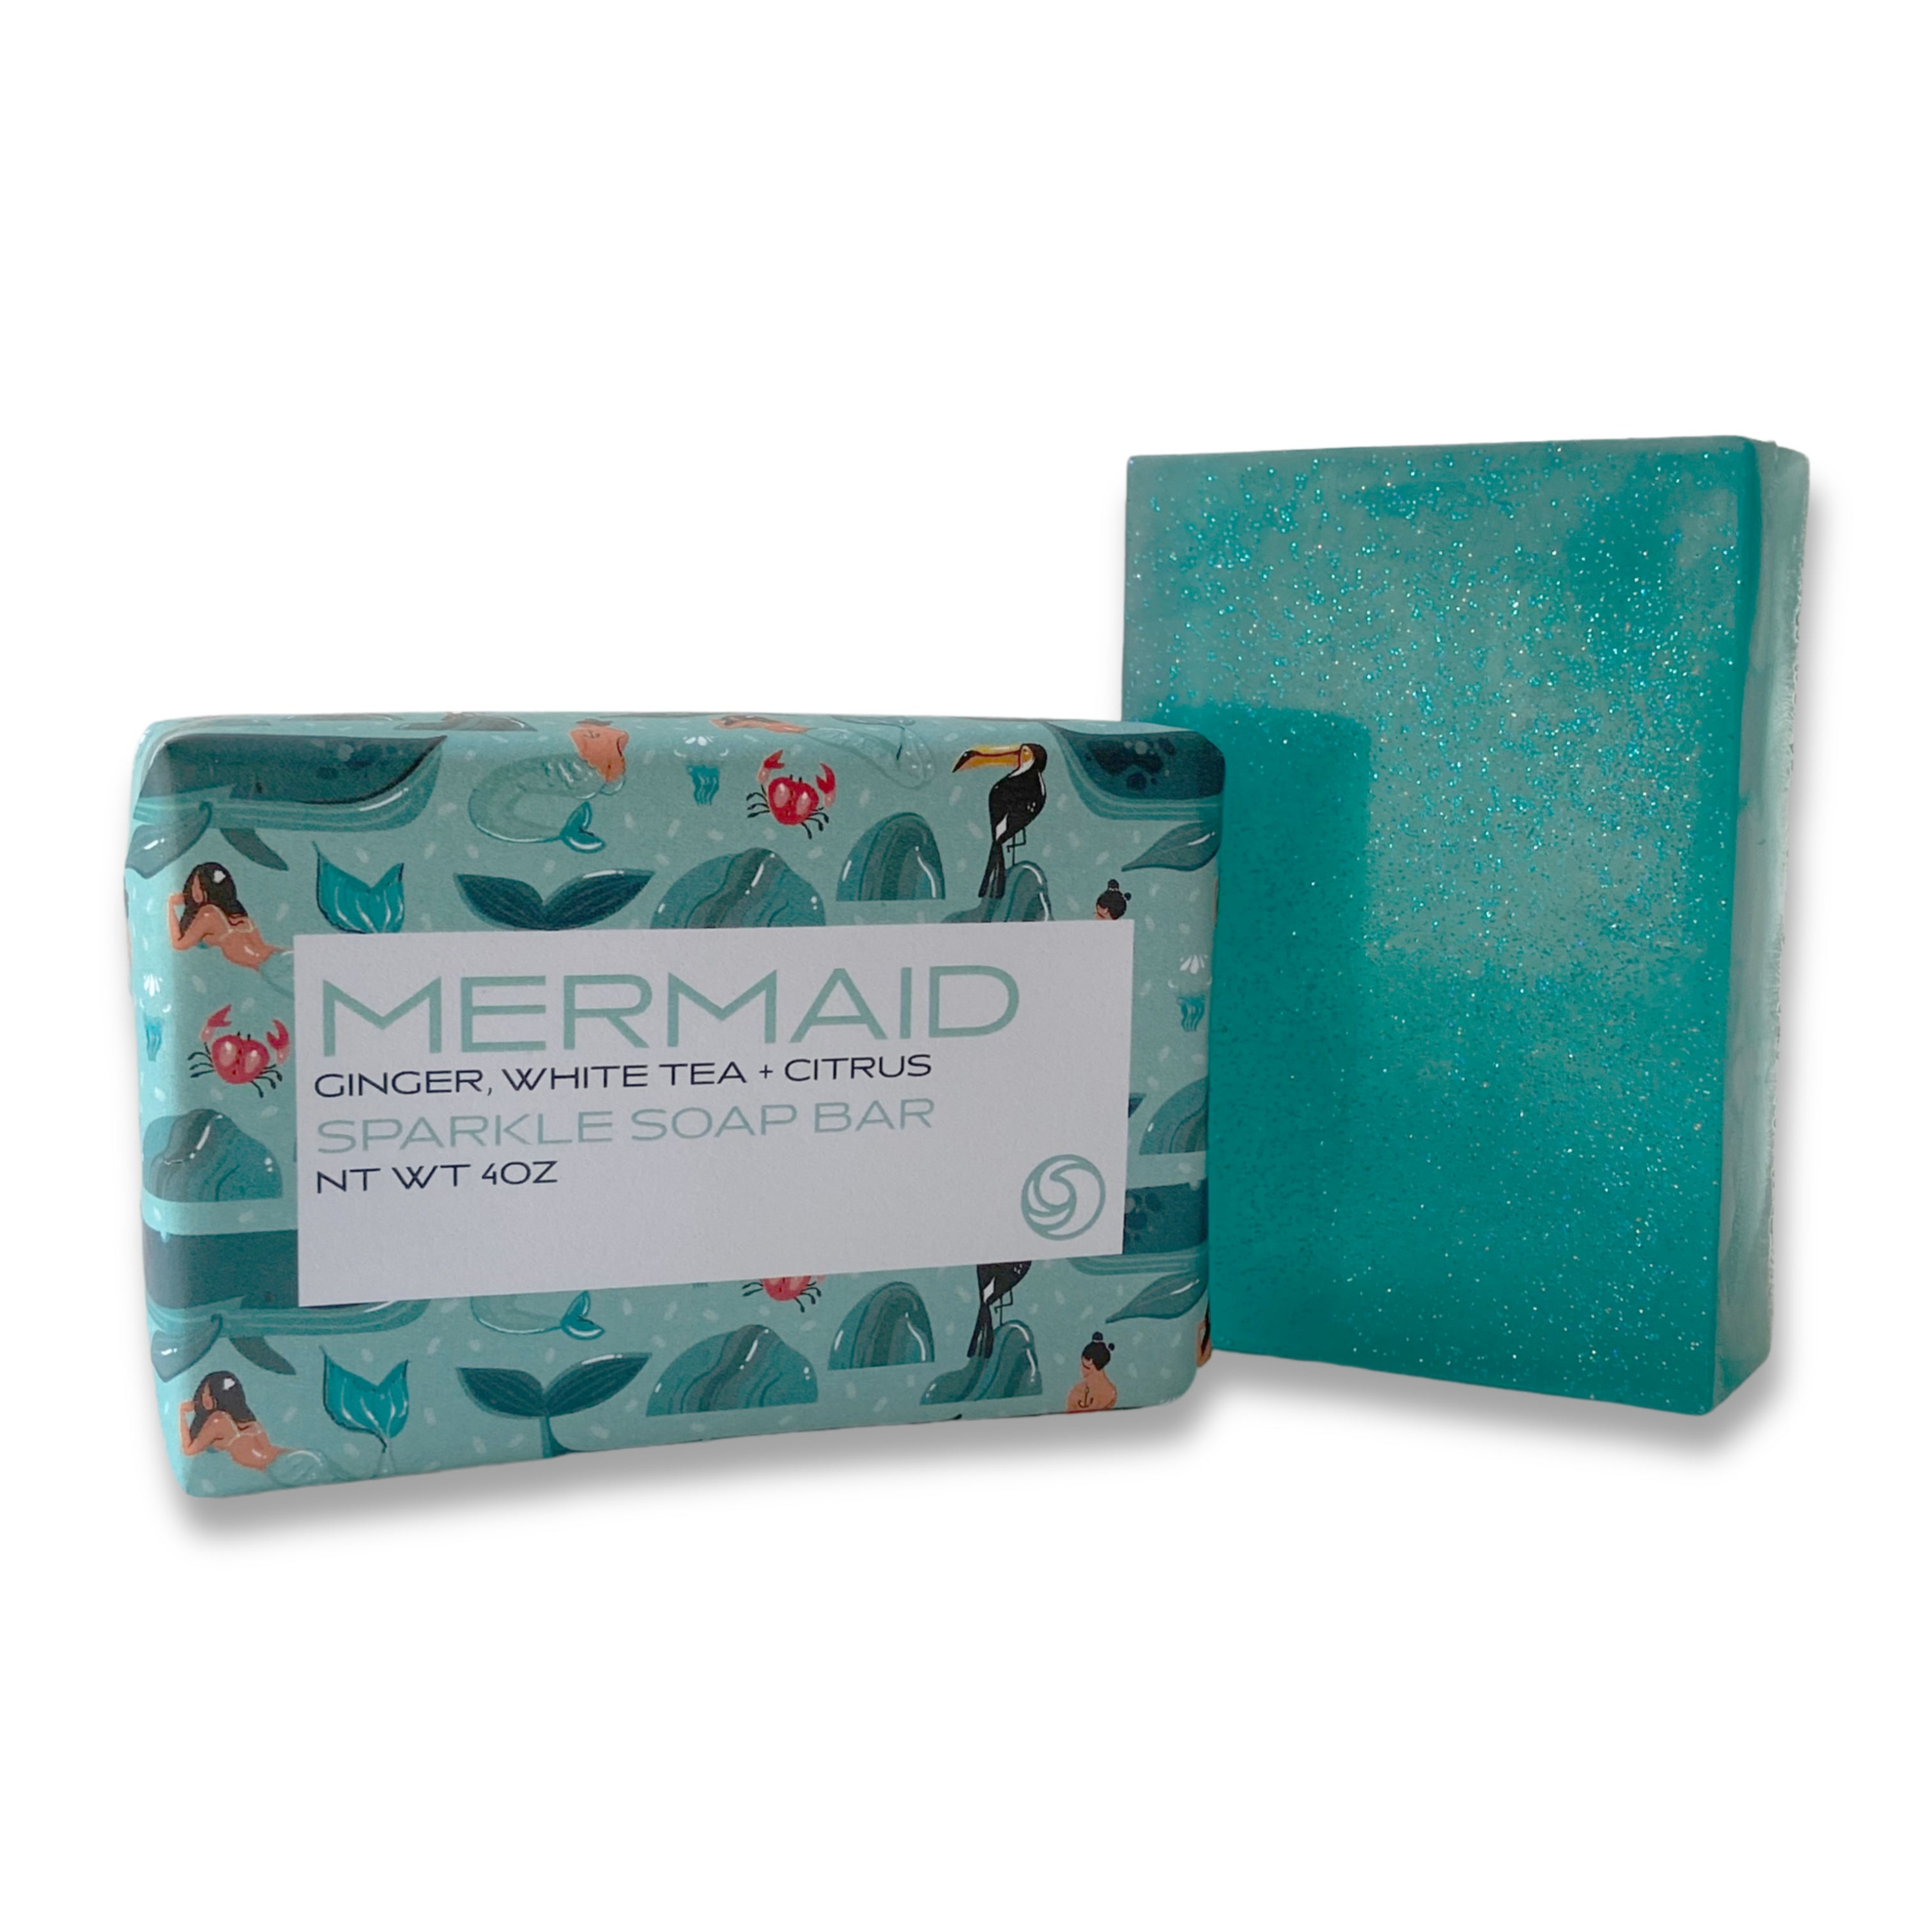 MERMAID Sparkle Soap